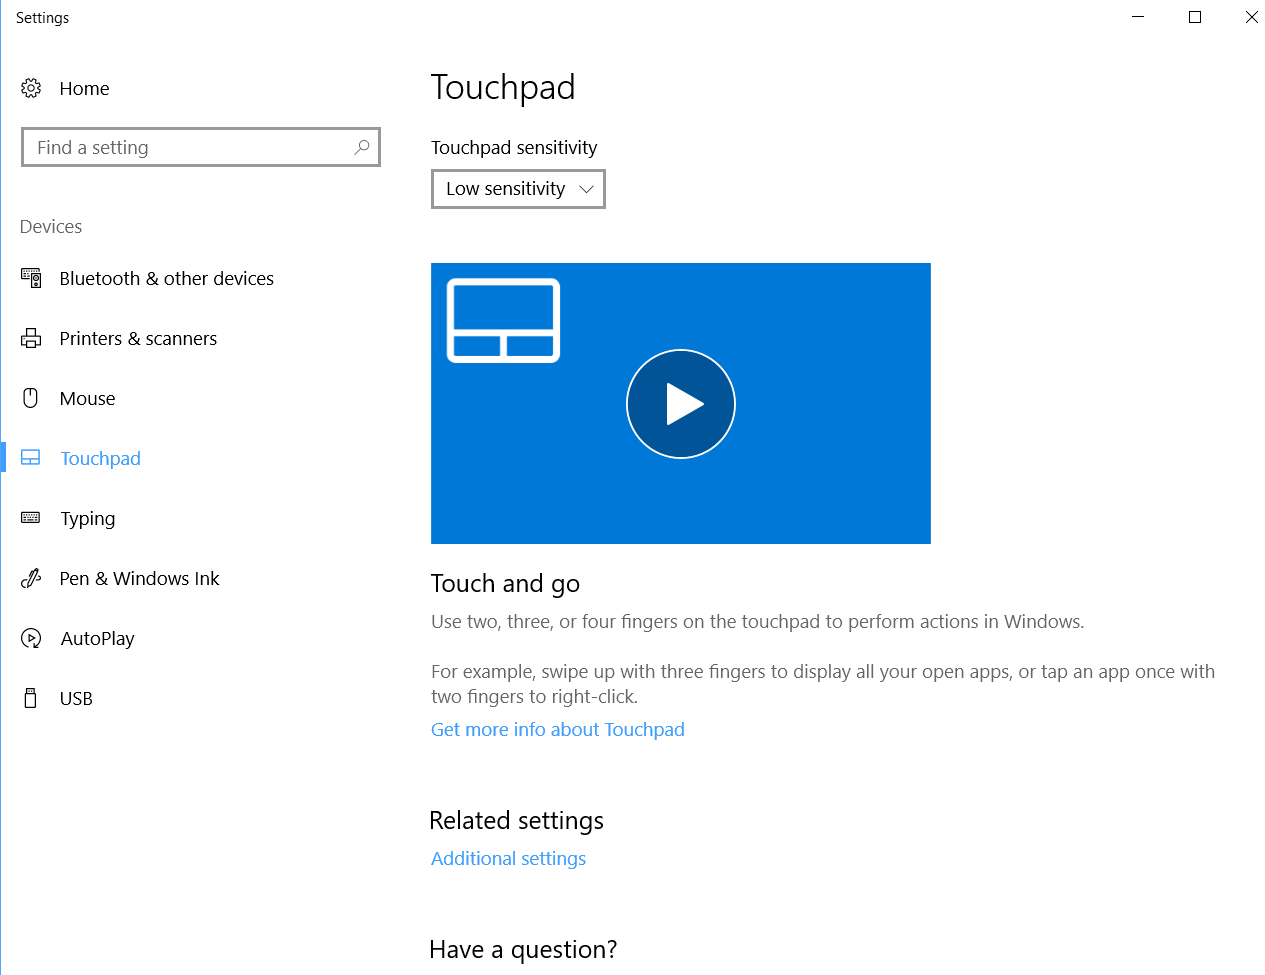 Touchpad: LOST OPTION to Disable the Touchpad when a Mouse